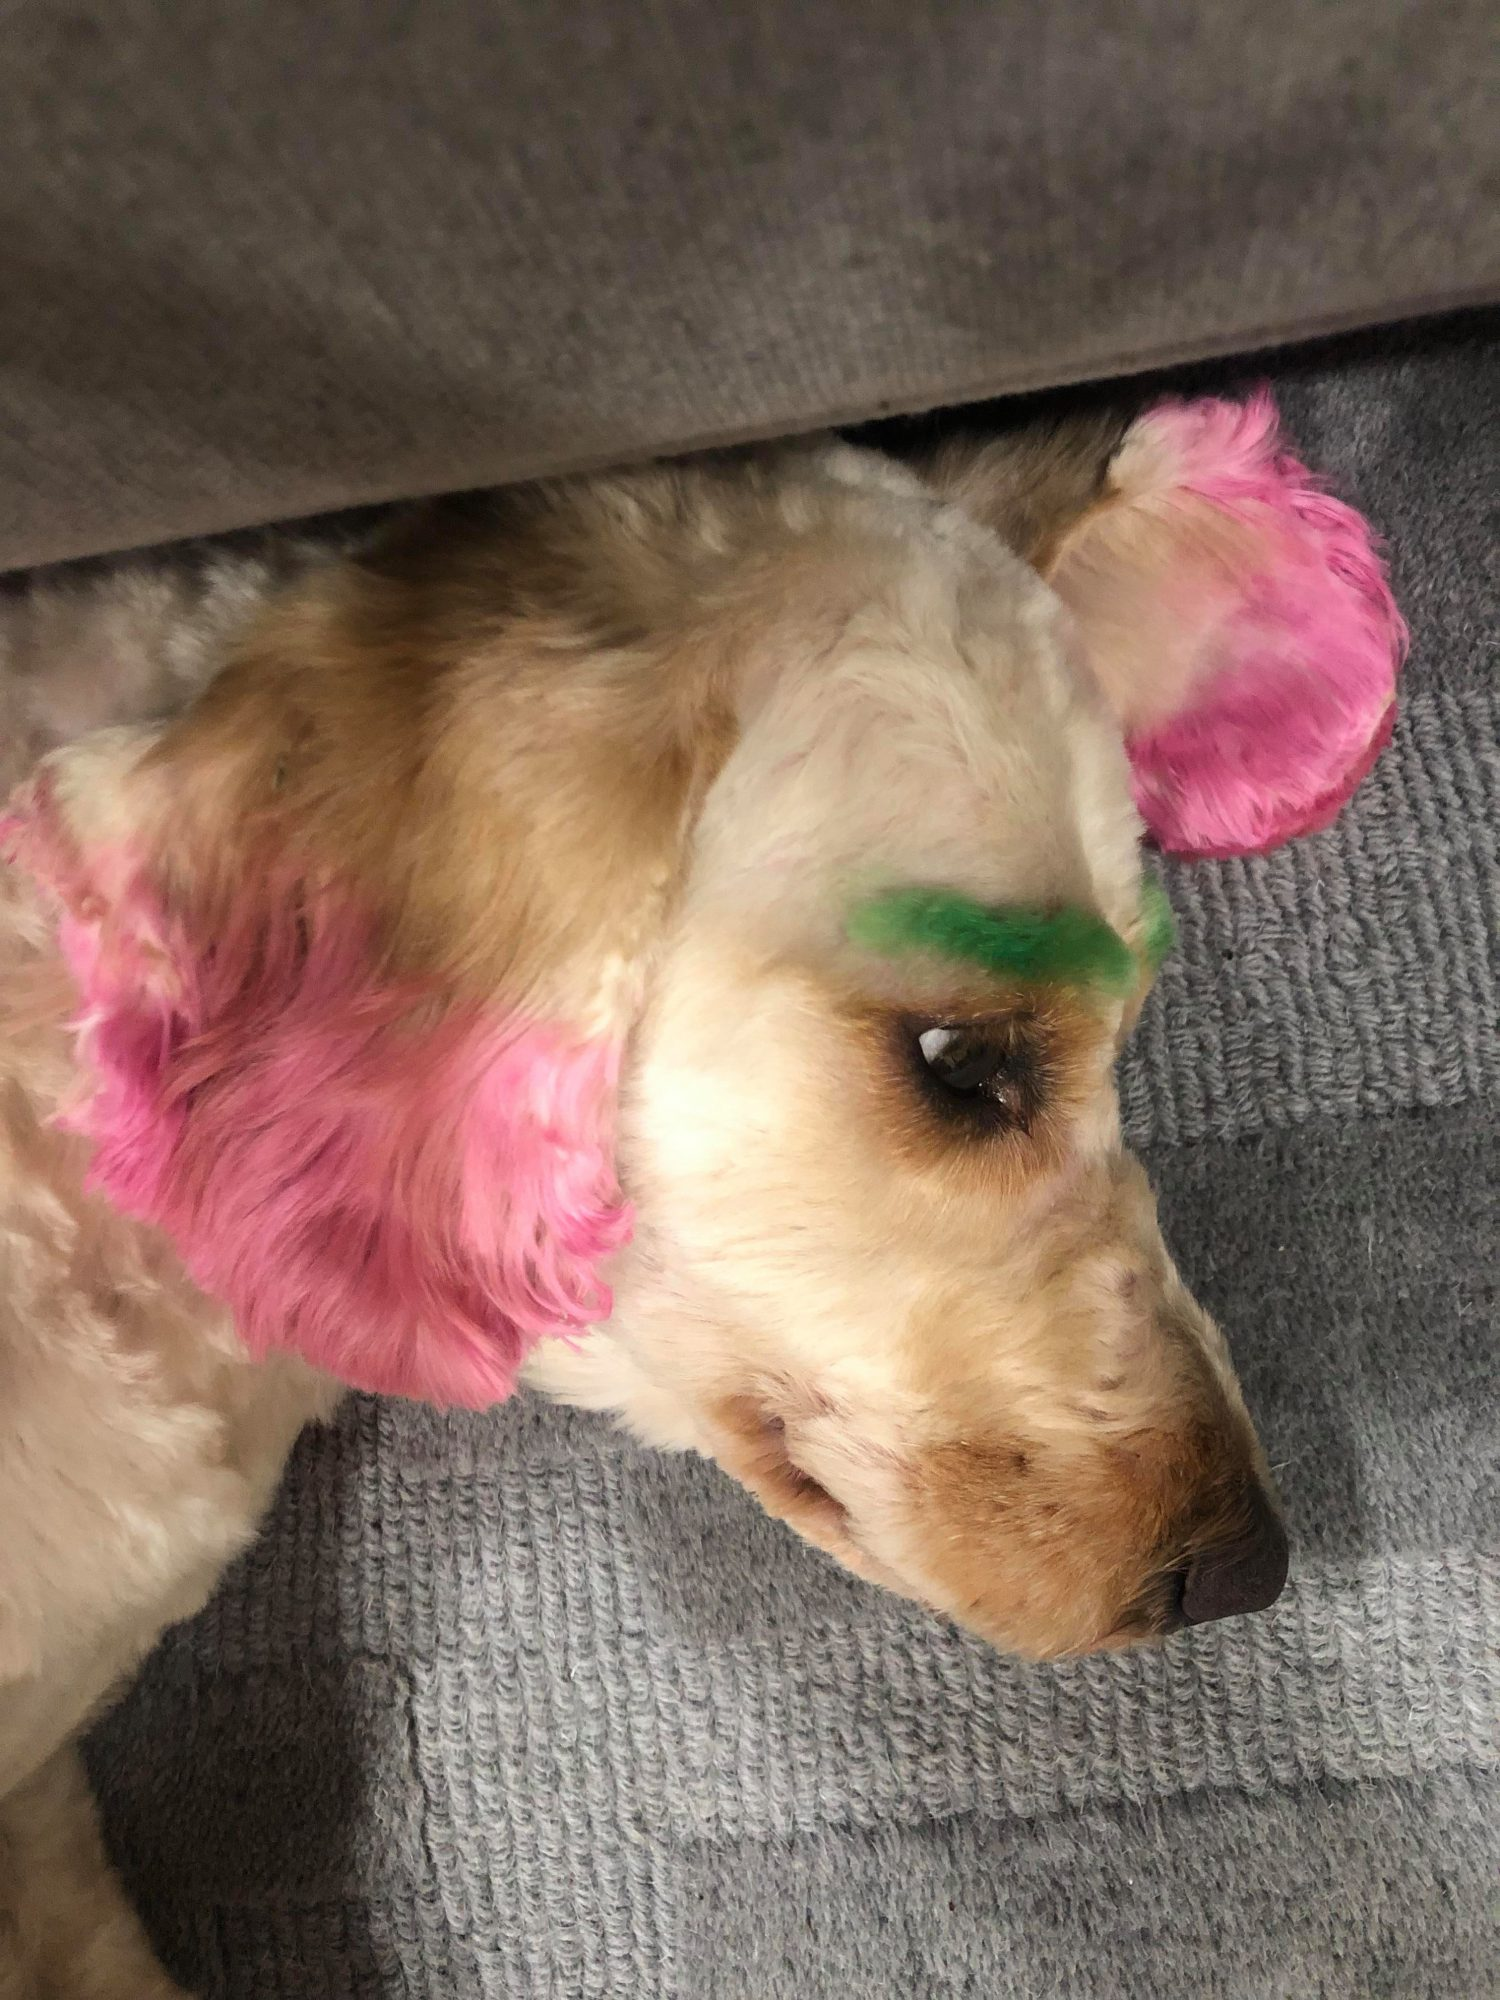 Dog Groomer dyed dogs hair without permission